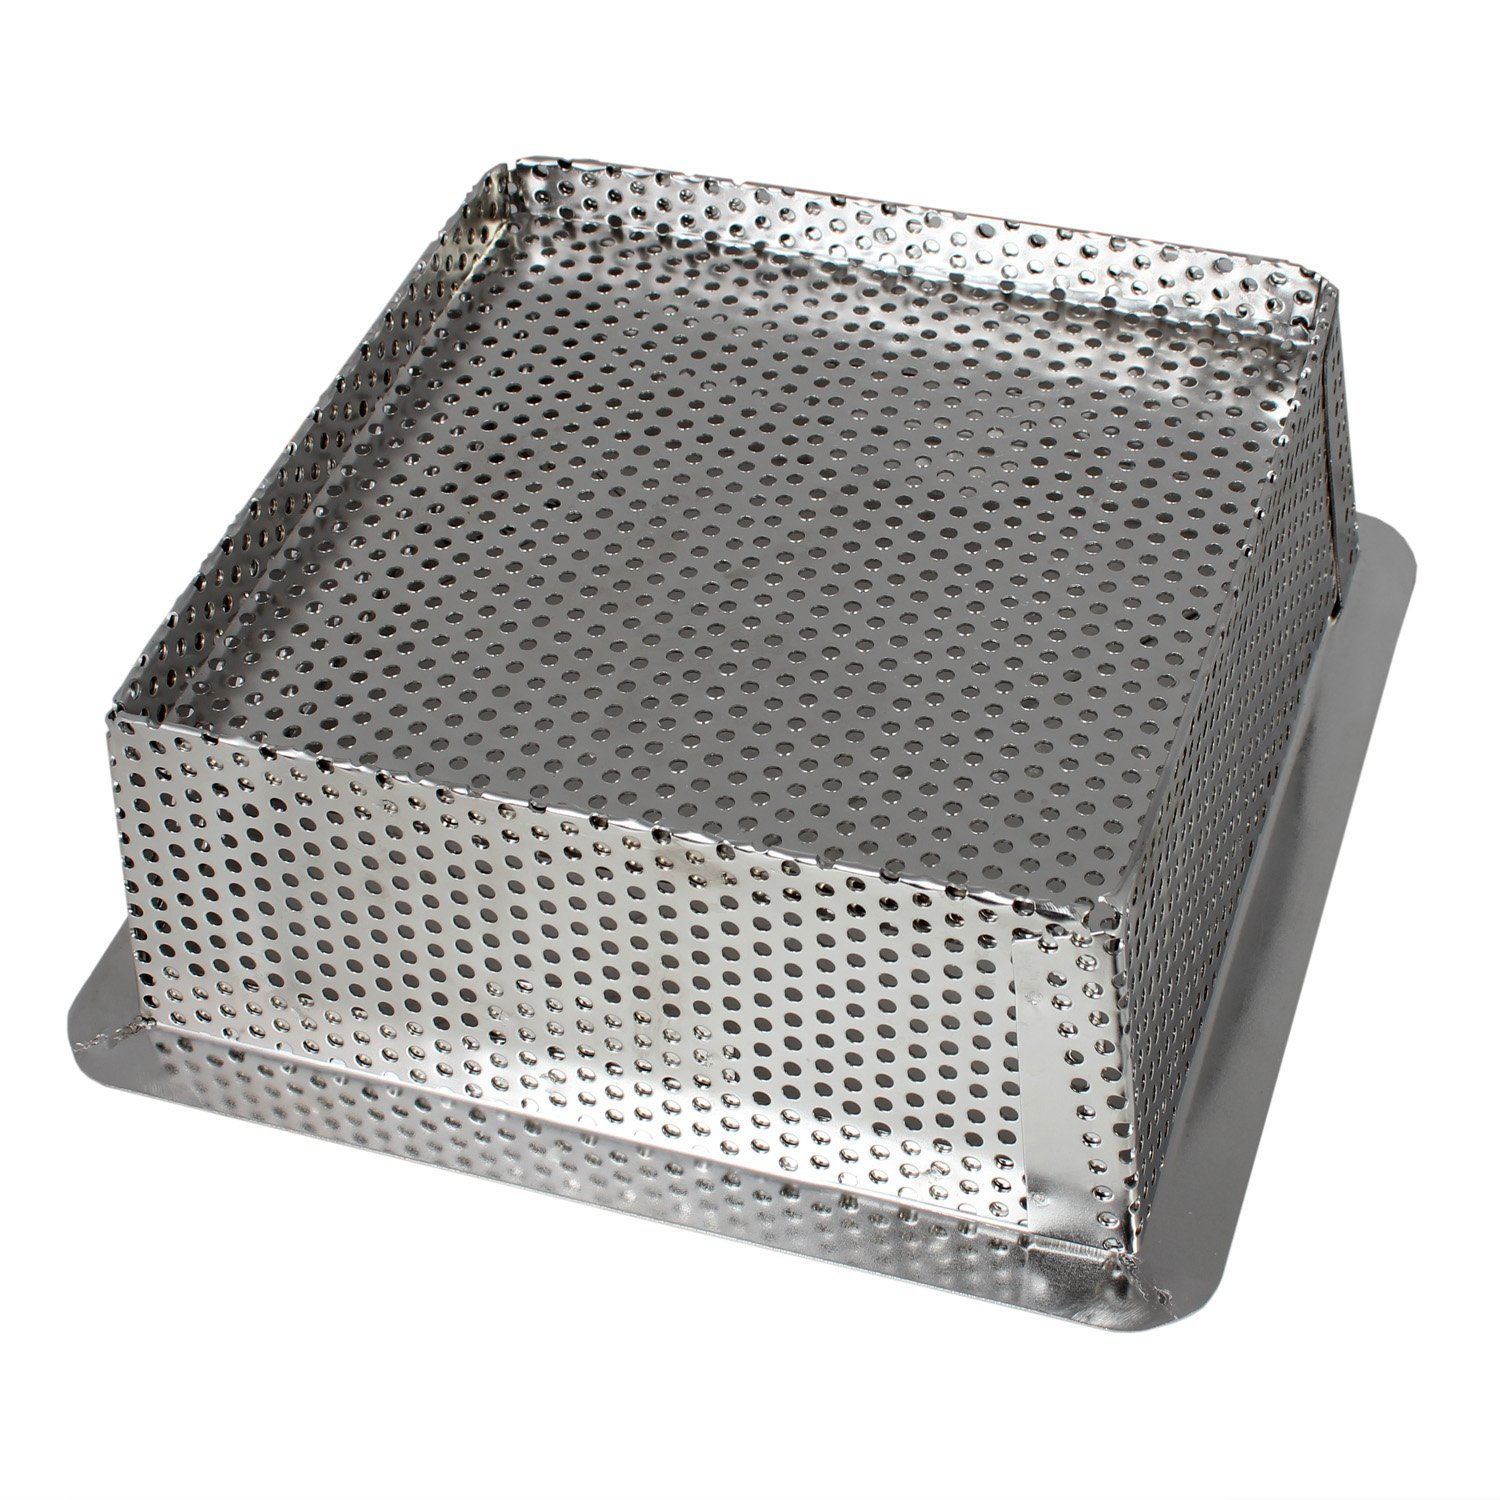 Fsq Floor Sink Basket Drain Strainer Stainless Steel For